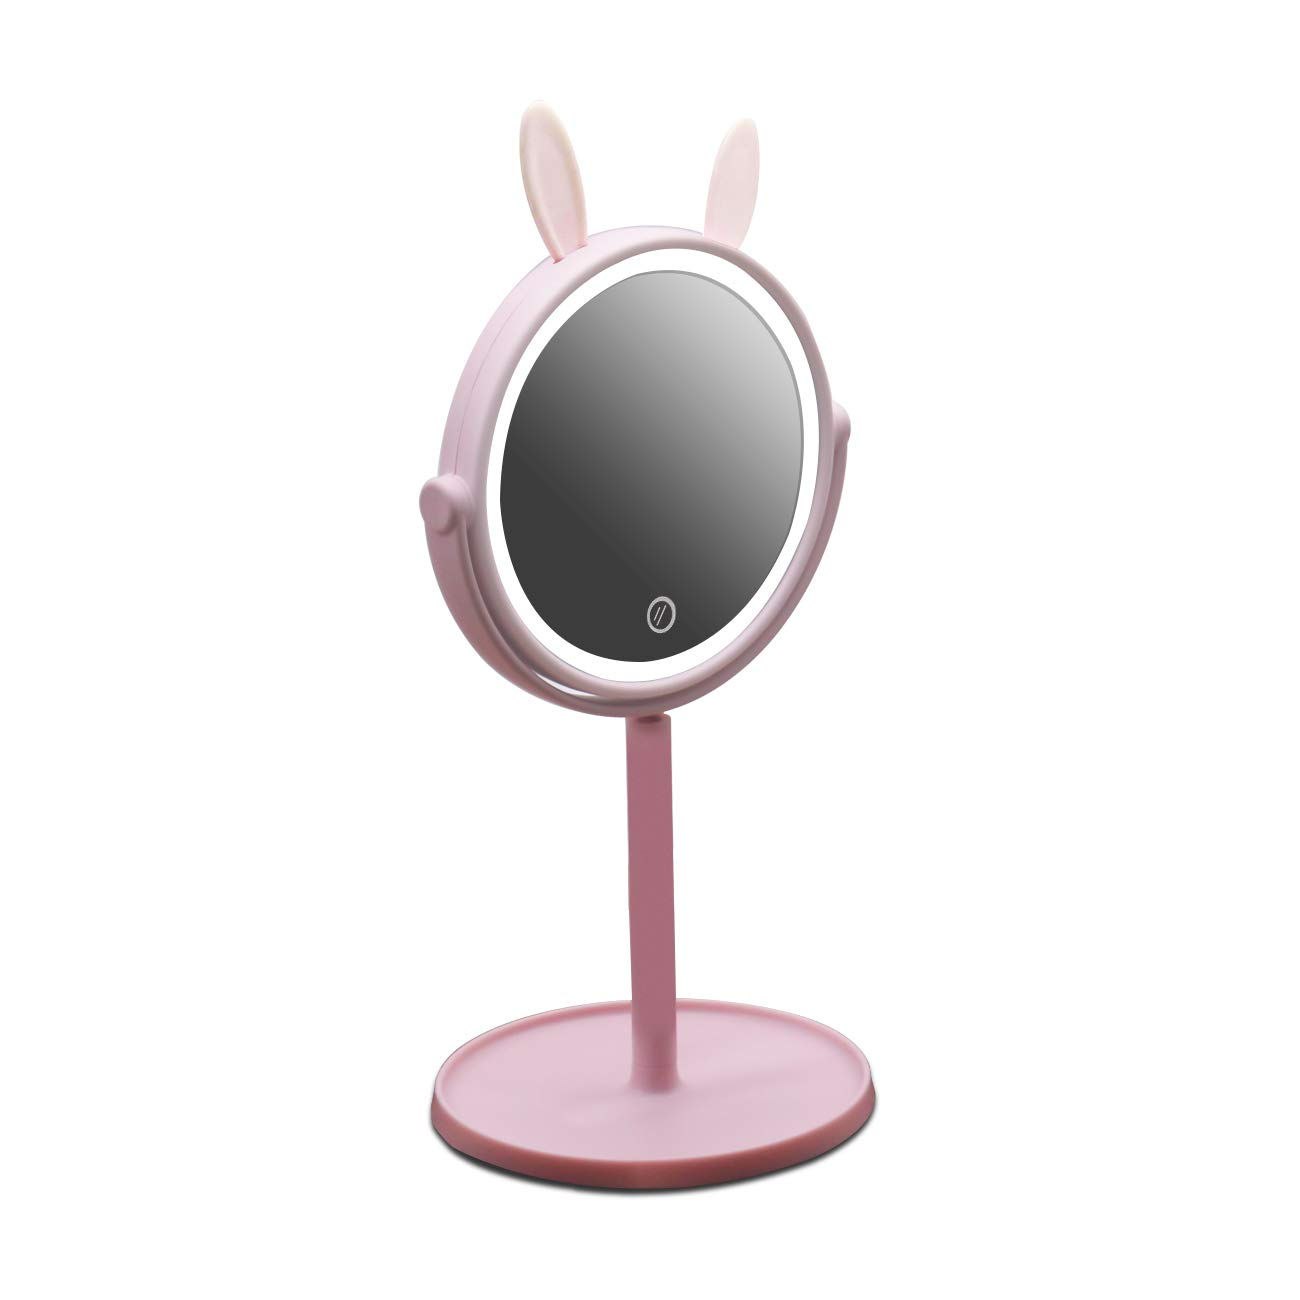 AODAILIHB LED Makeup mirror Enough Storage Bottom Box Cute Rabbit-Shape Soft Lights Dimming By Touch Screen Two In One Traveling Cosmetic Mirror (Pink) …